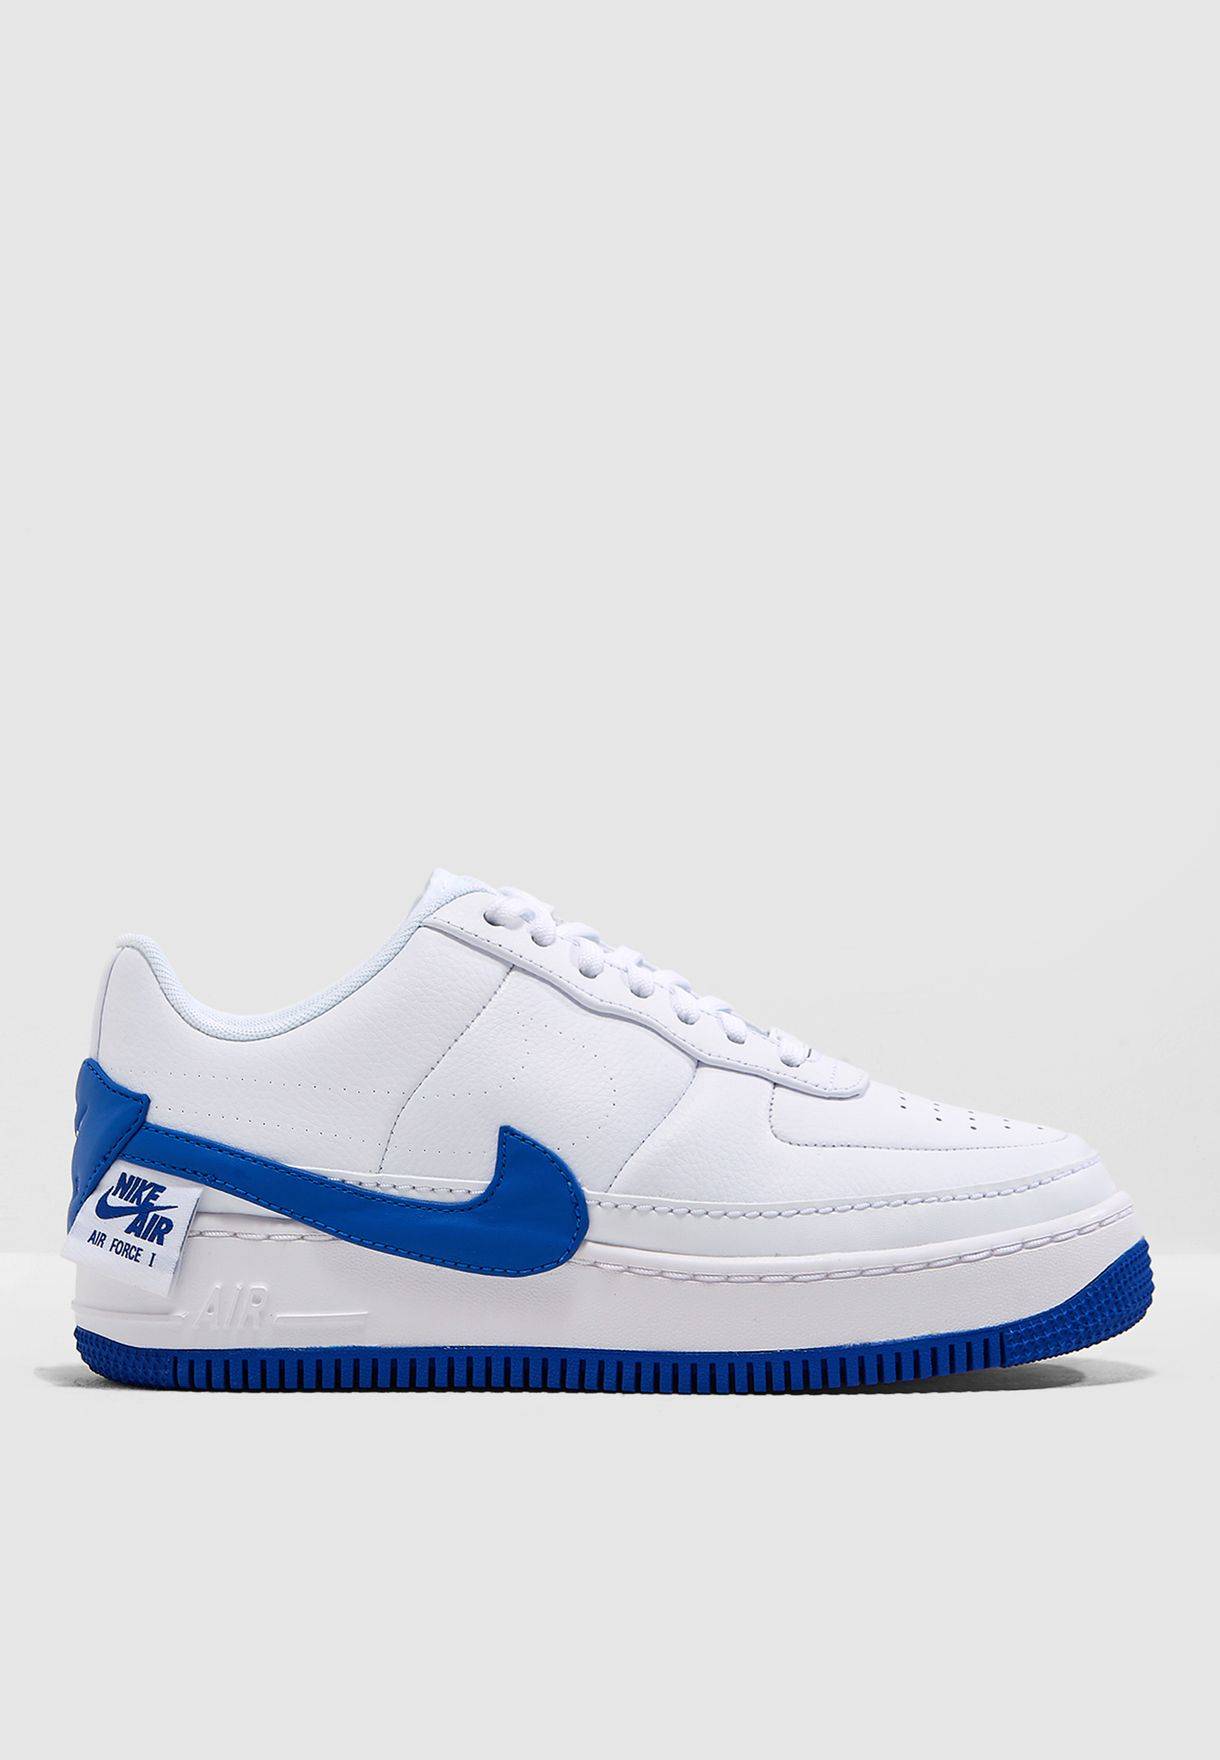 premium selection 3aaf3 0ce11 Air Force 1 Jester XX